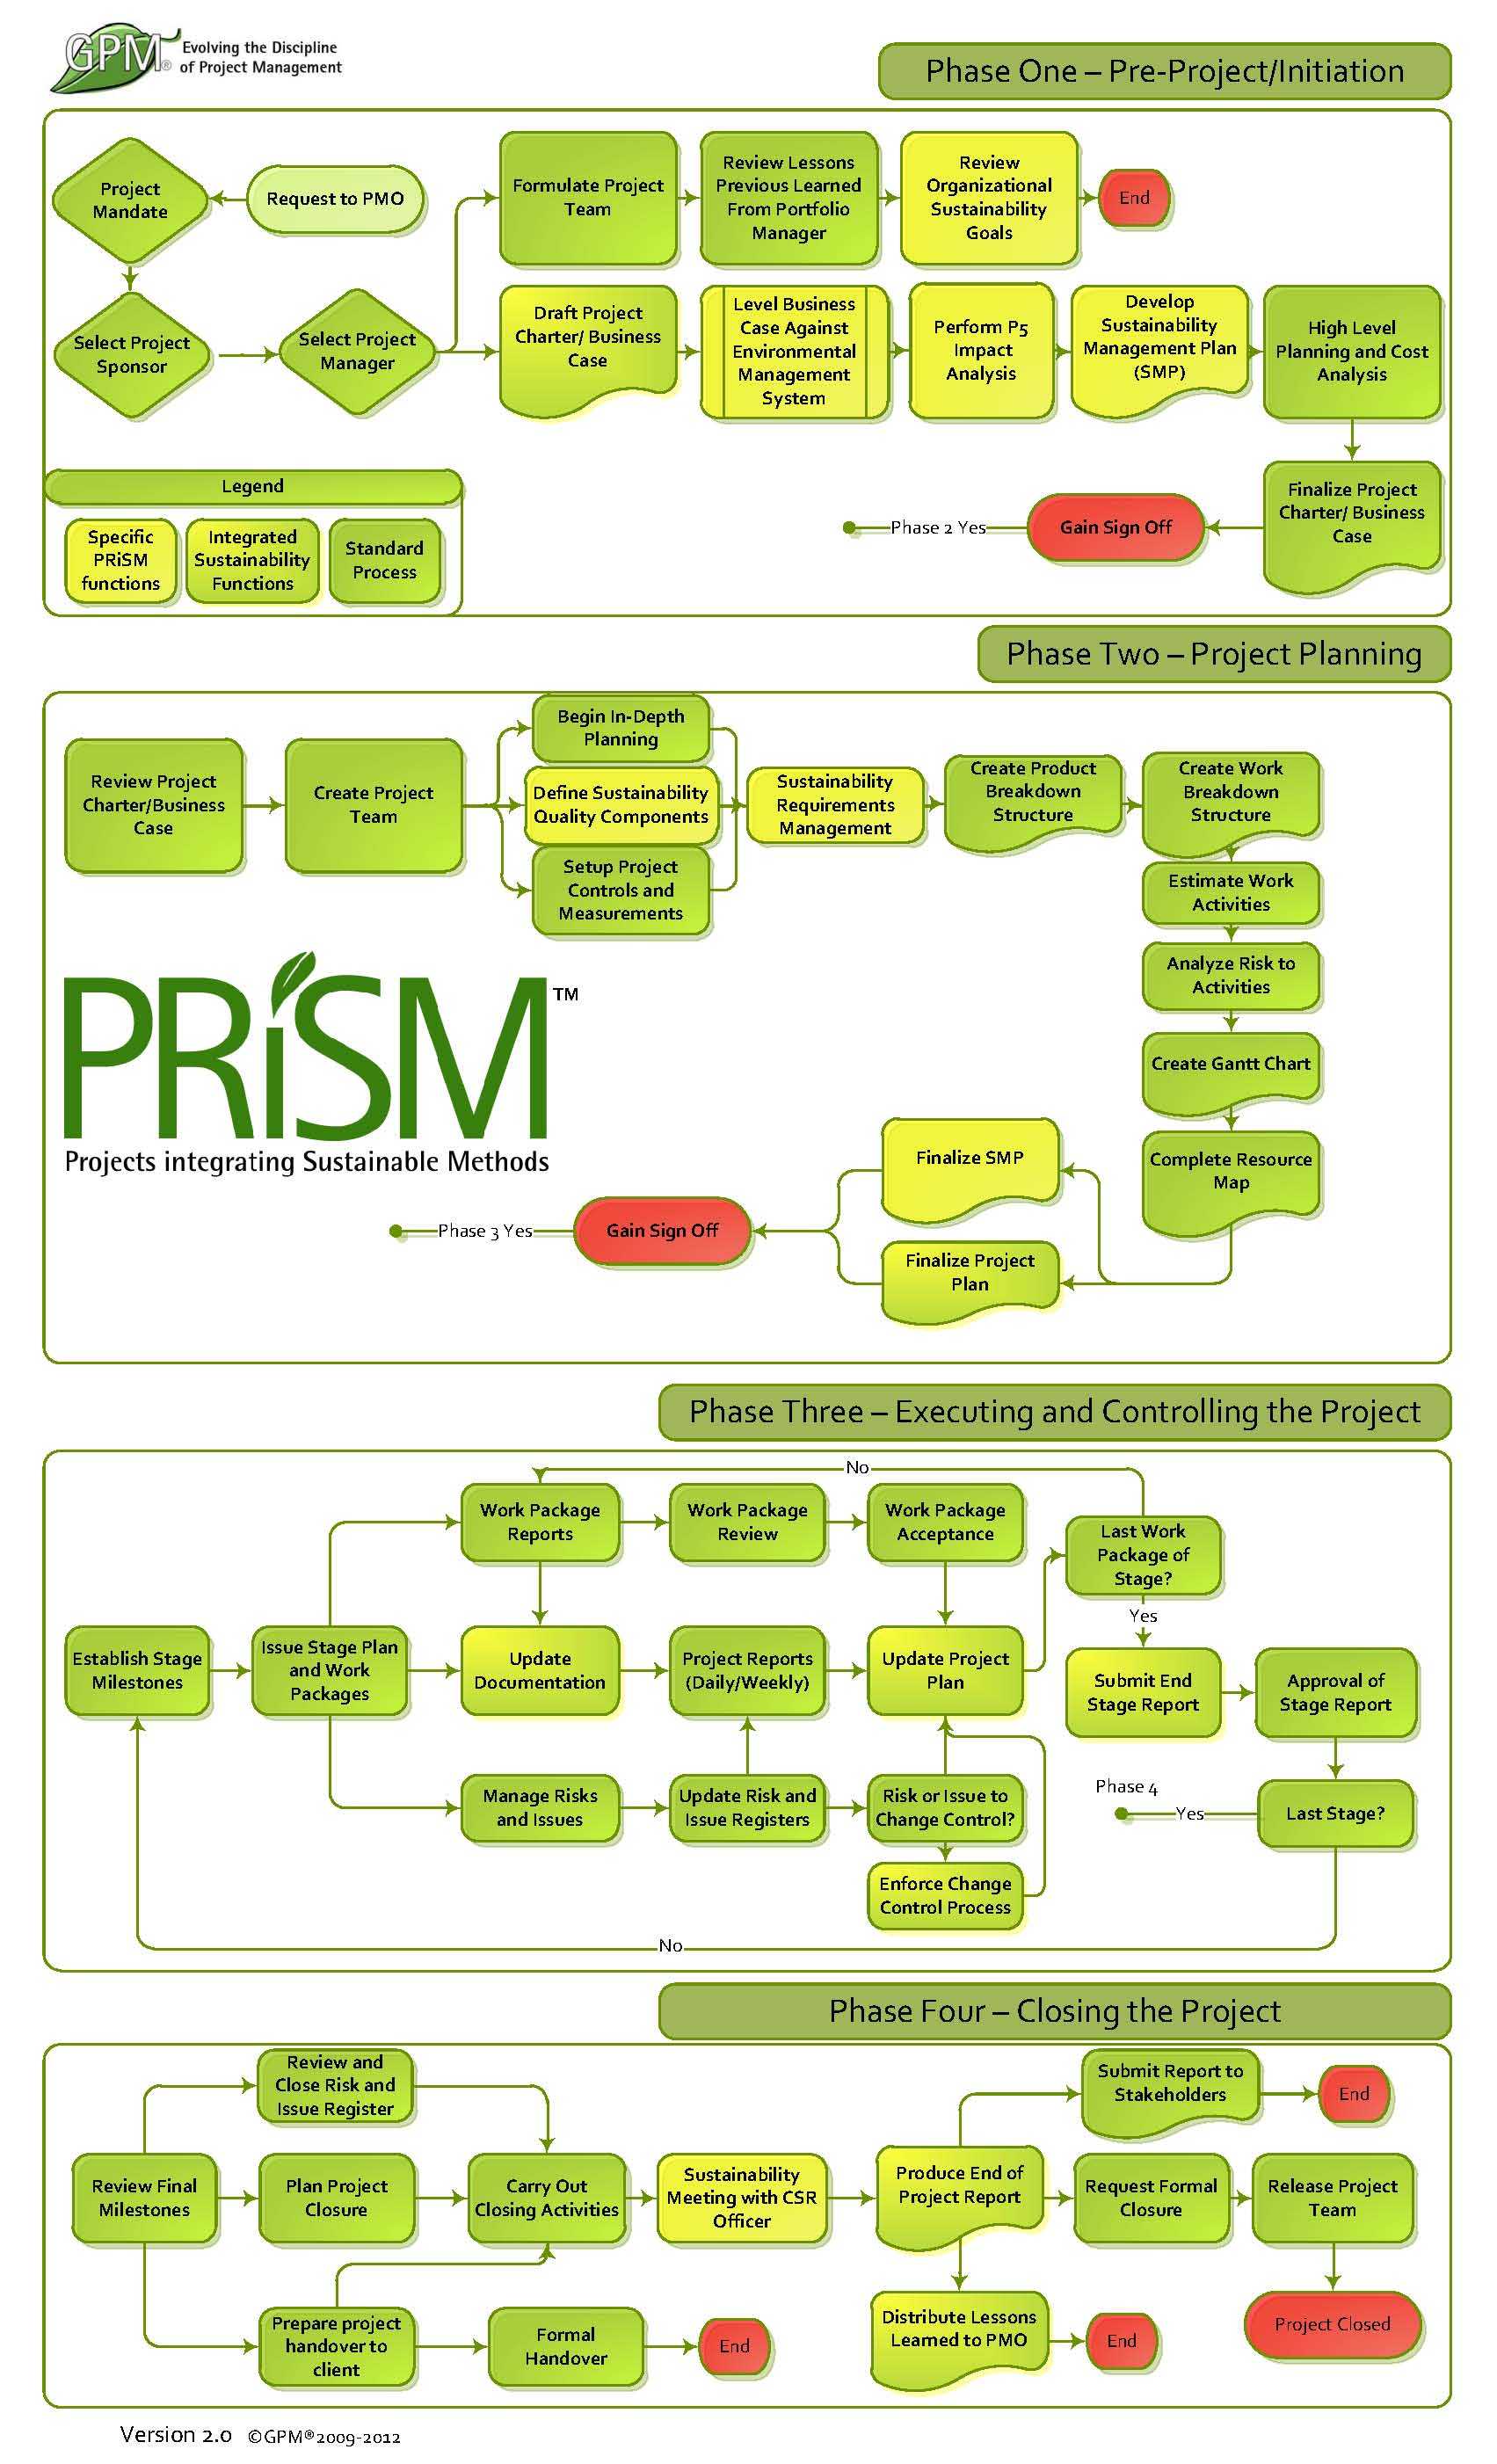 Construction Flow Chart Template: PRiSM Flowchart.jpg - Wikimedia Commons,Chart